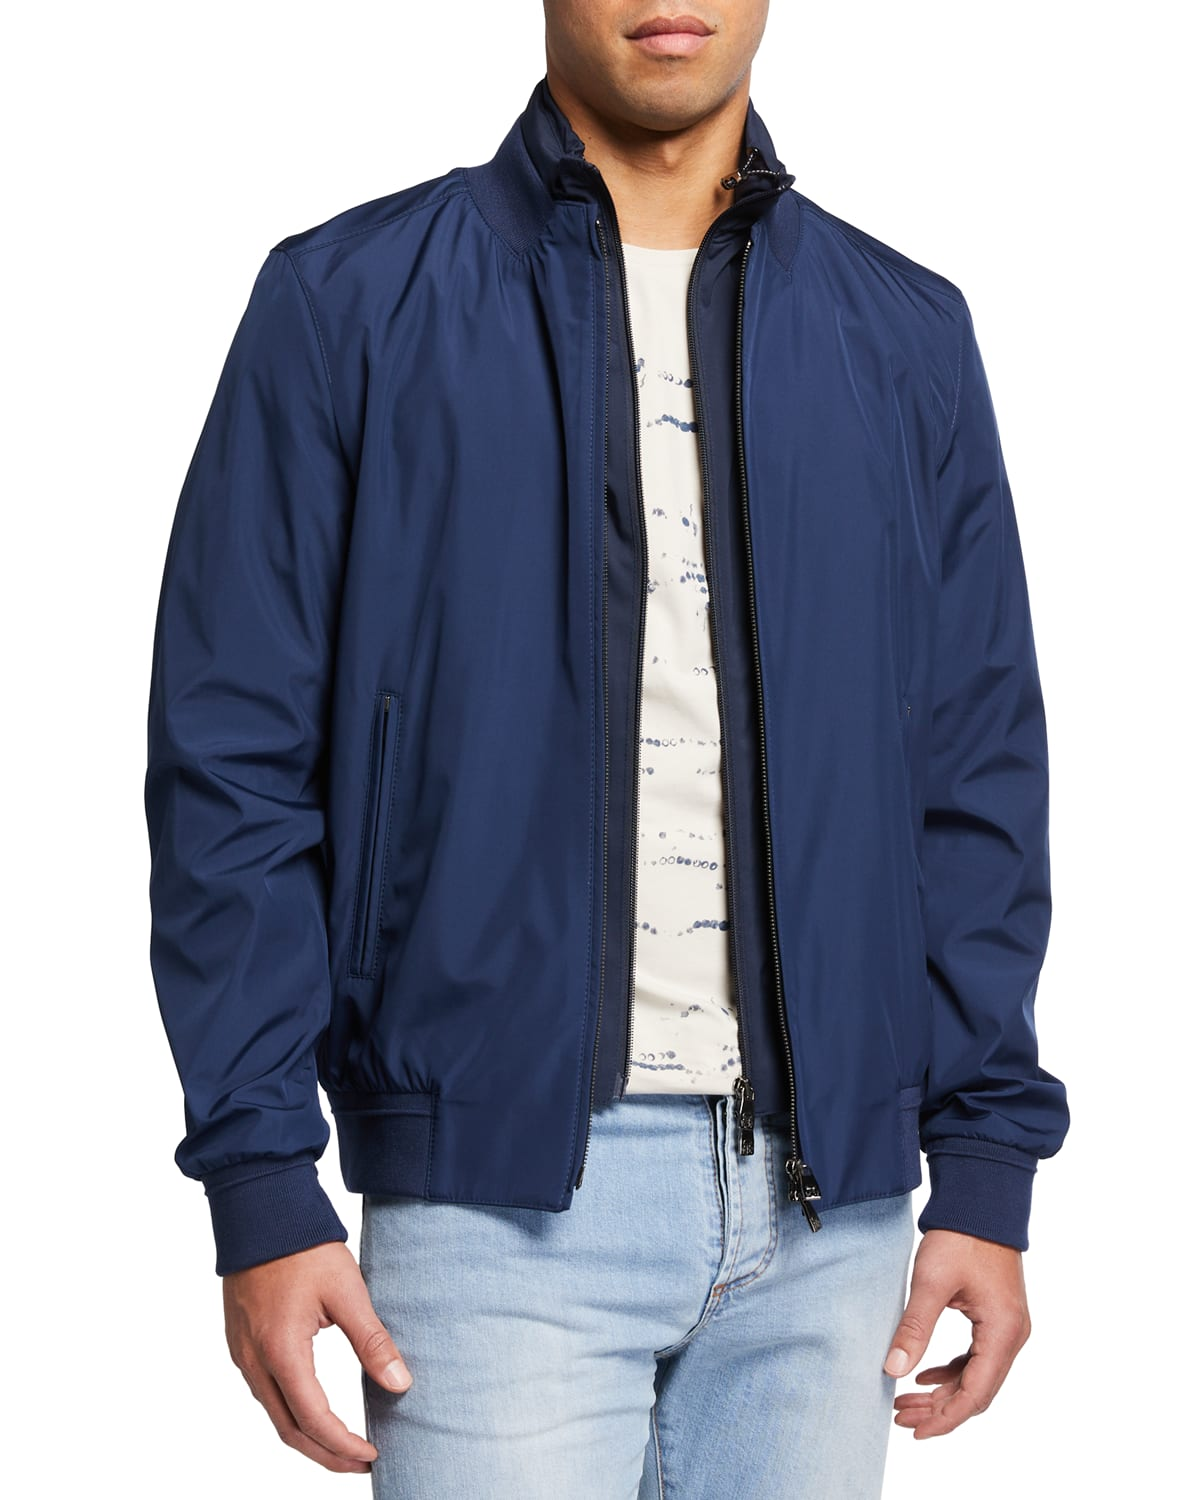 Men's Bomber Jacket with Removable Bib